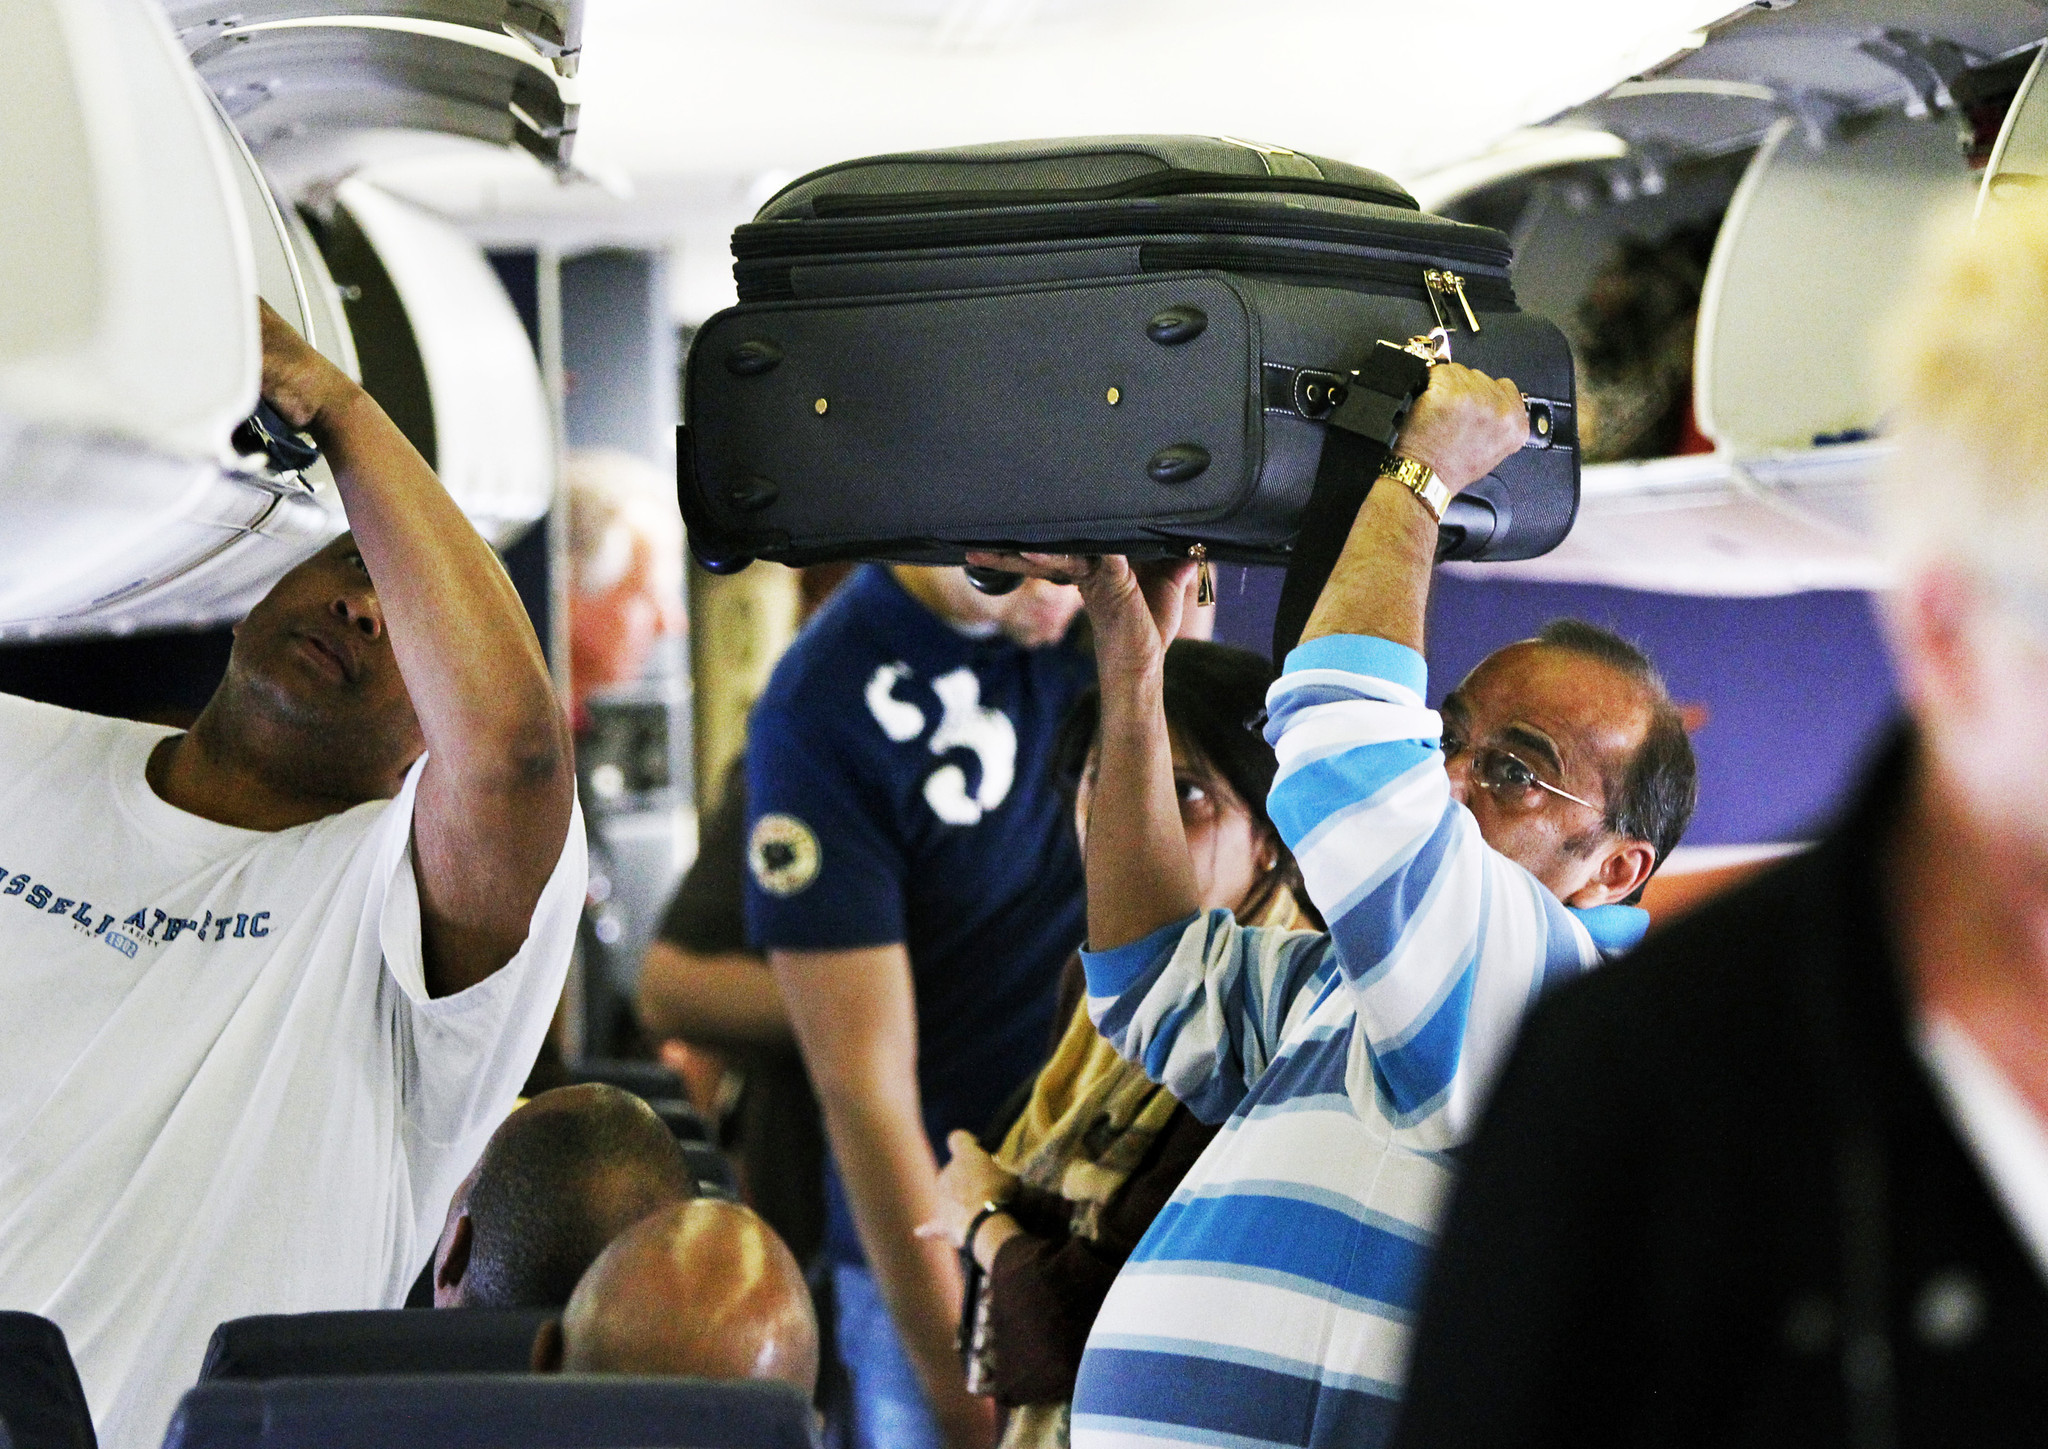 Airline Group Proposes Smaller Carry On Bags La Times